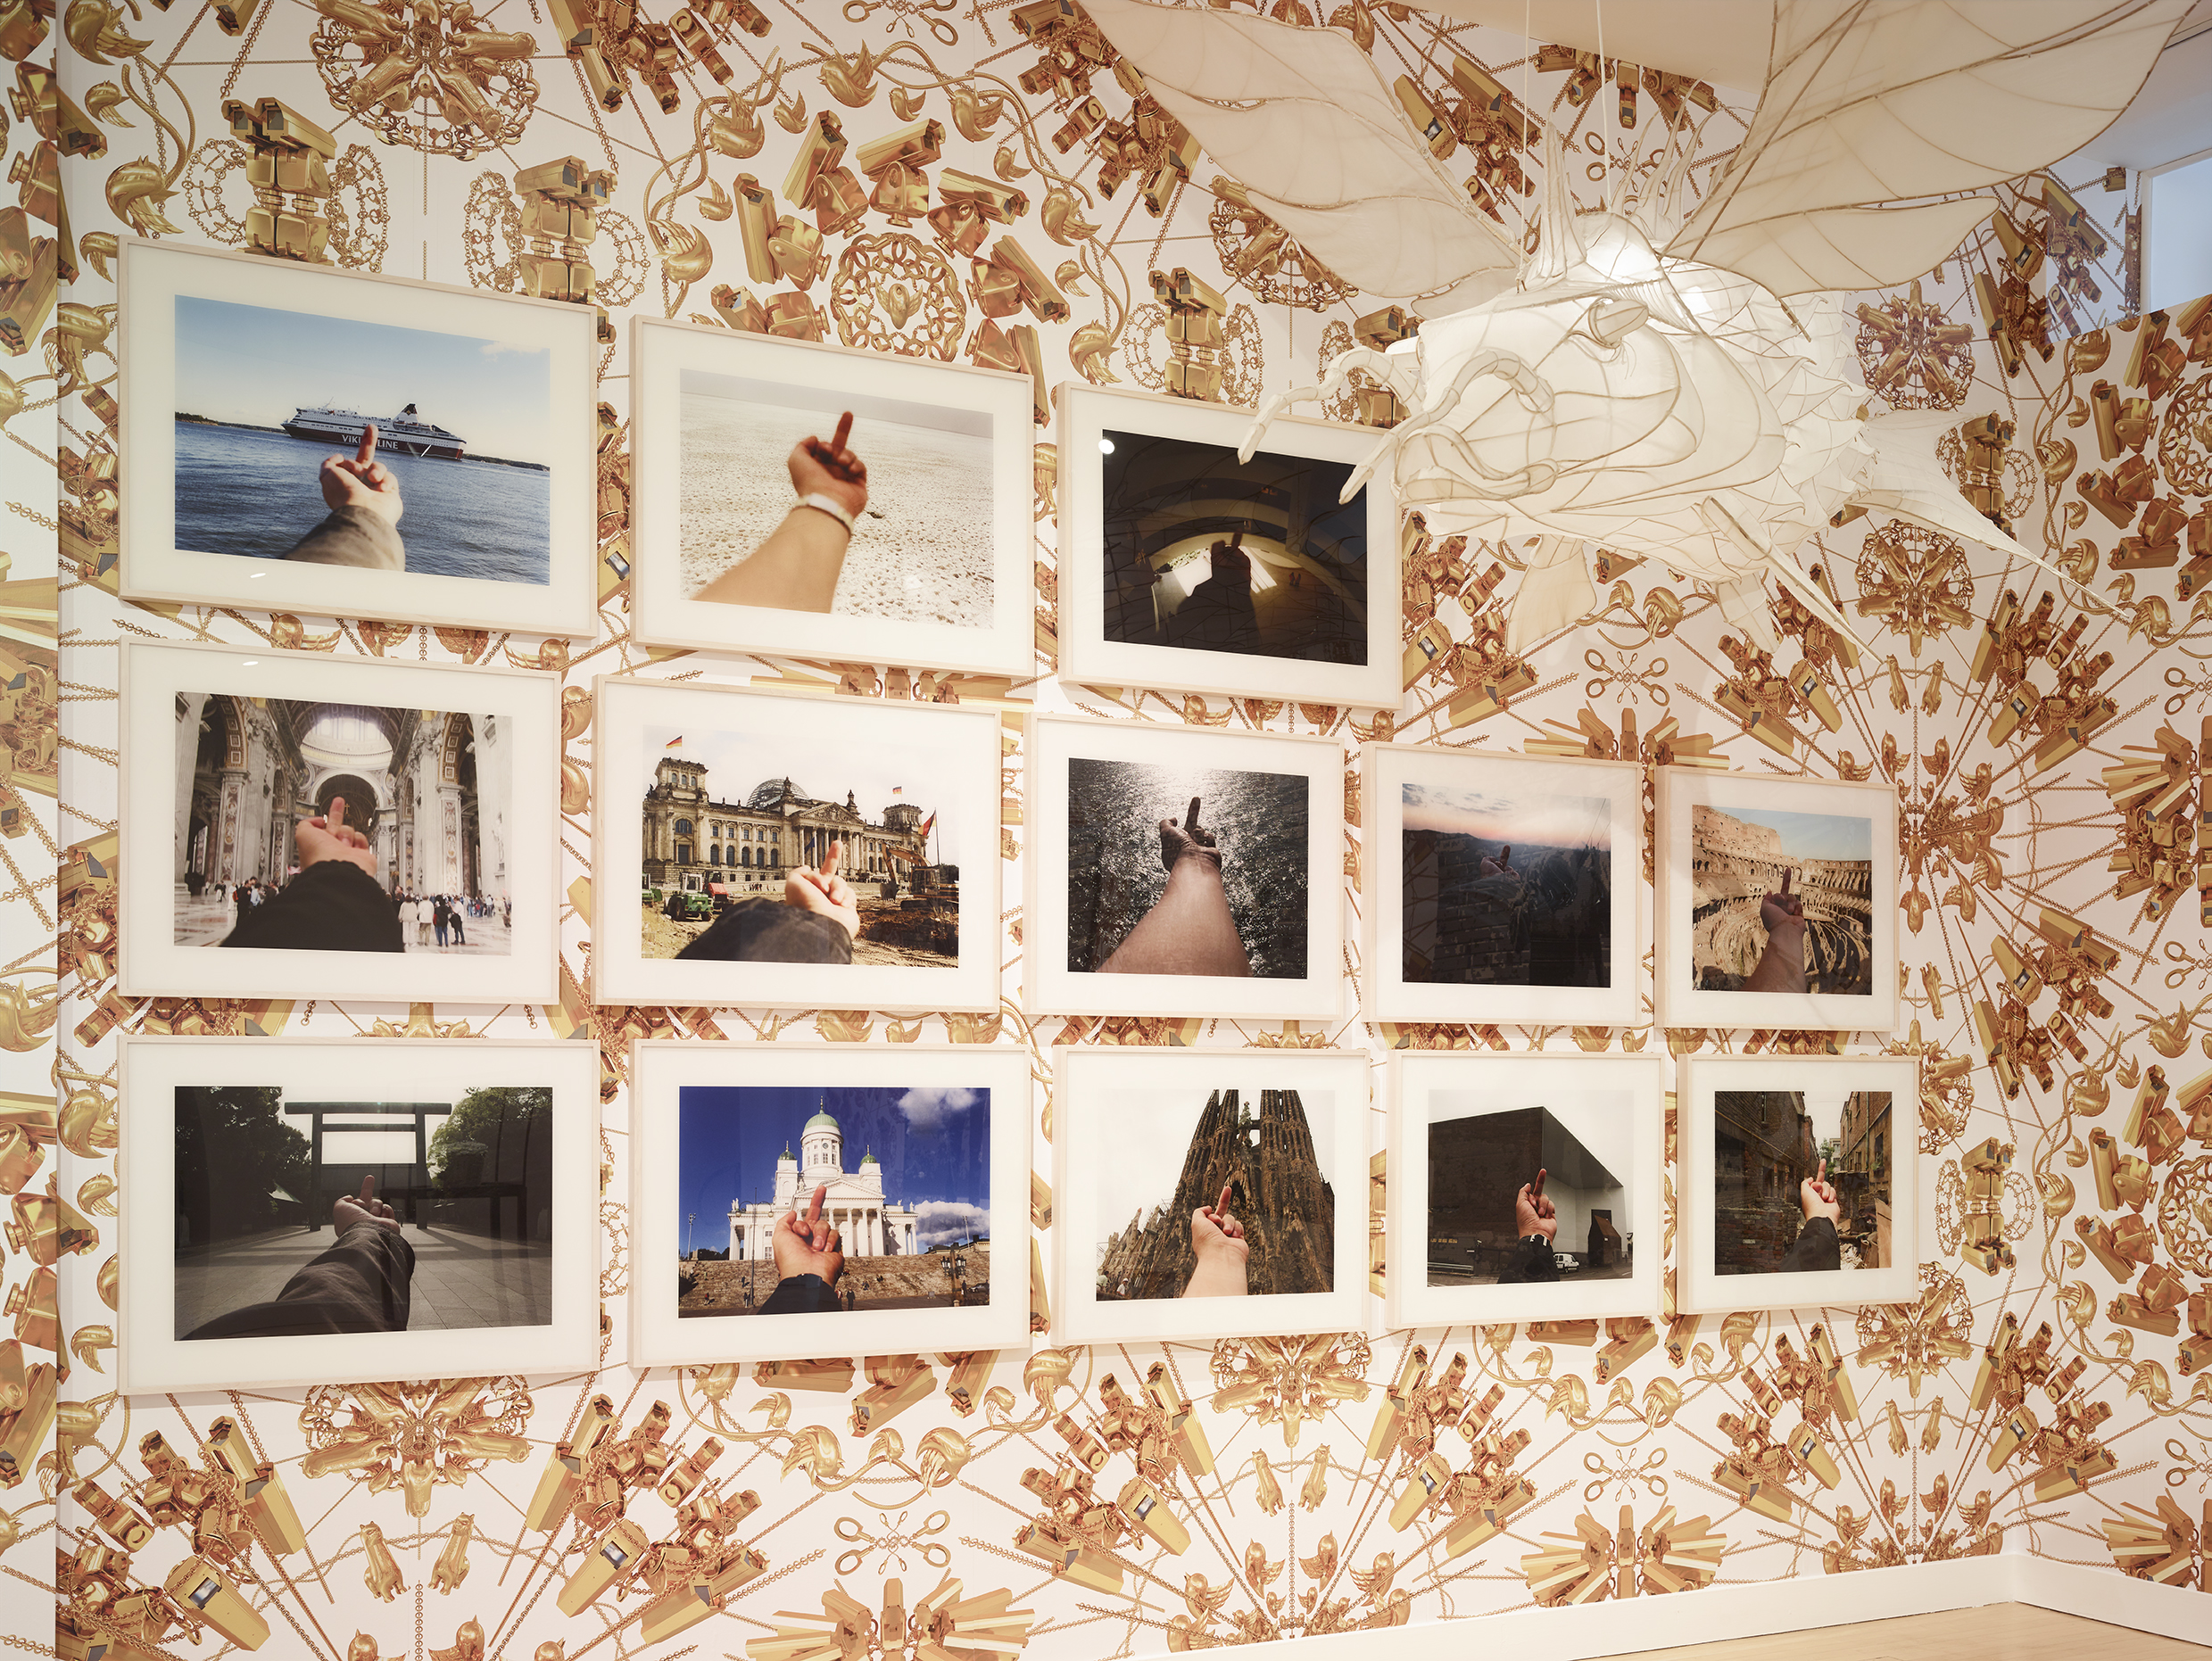 160508_HainesGallery_AiWeiWei_Overrated_RDH_194.jpg